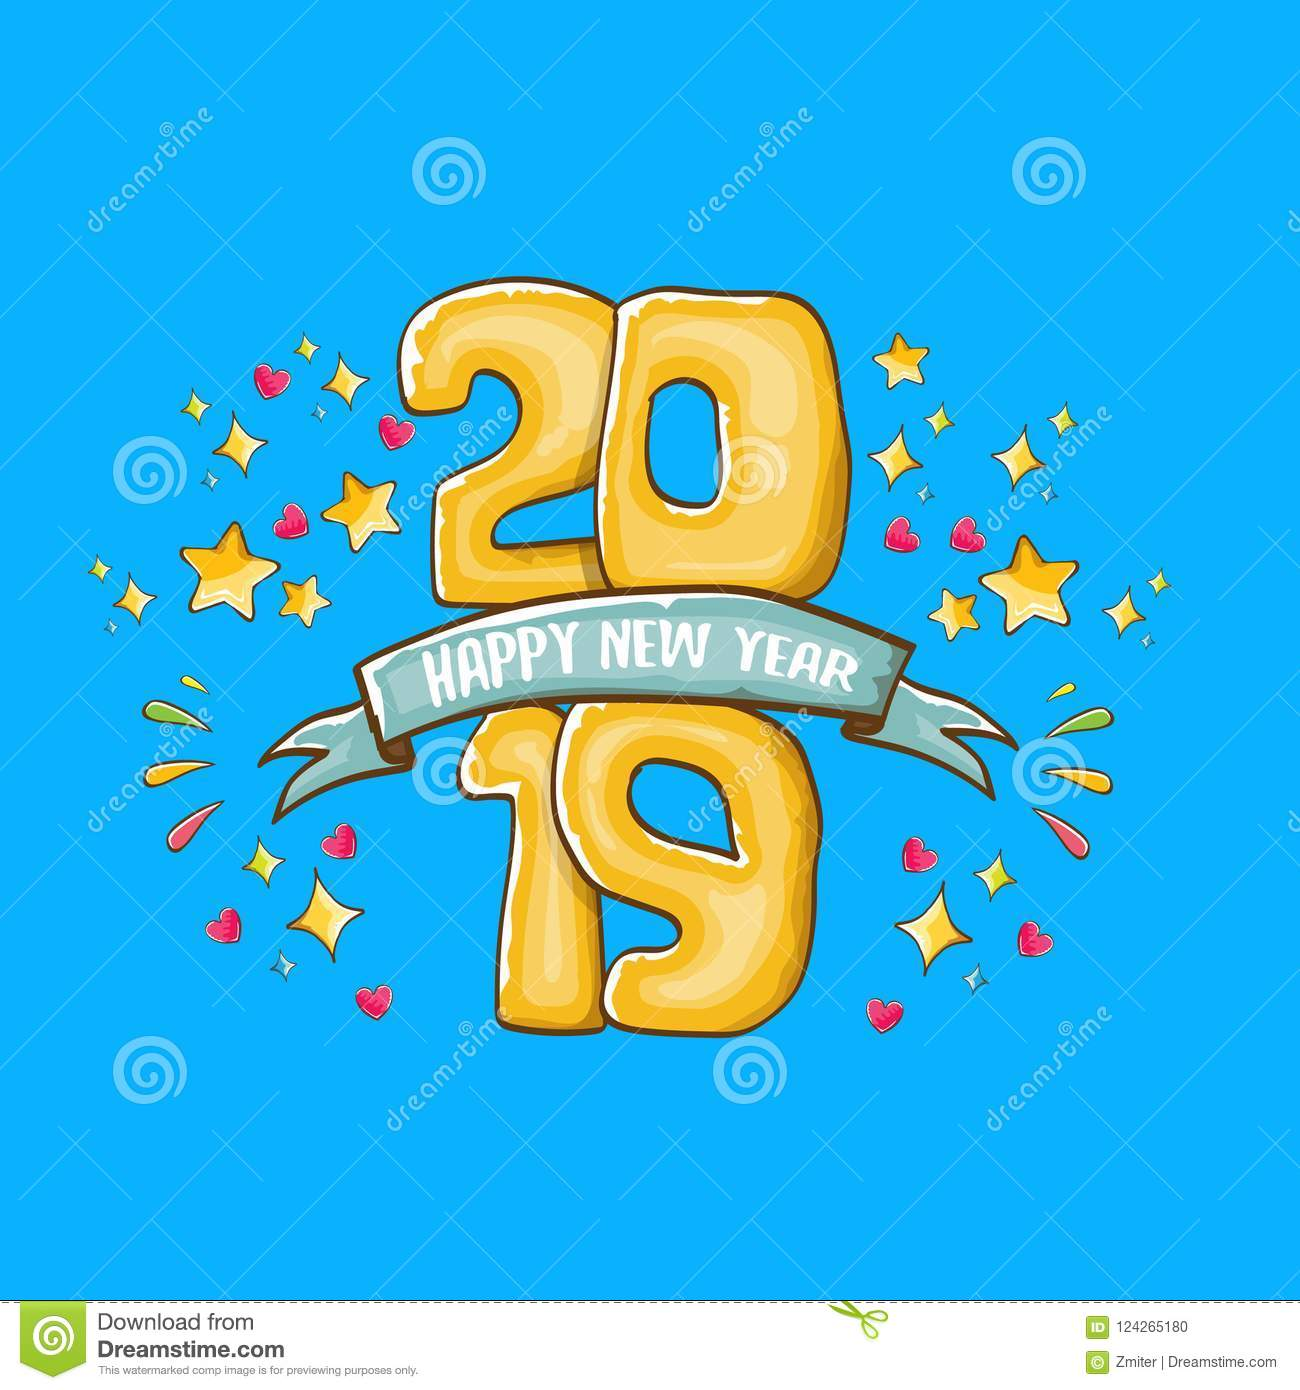 2019 happy new year poster design template vector happy new year greeting illustration with colored